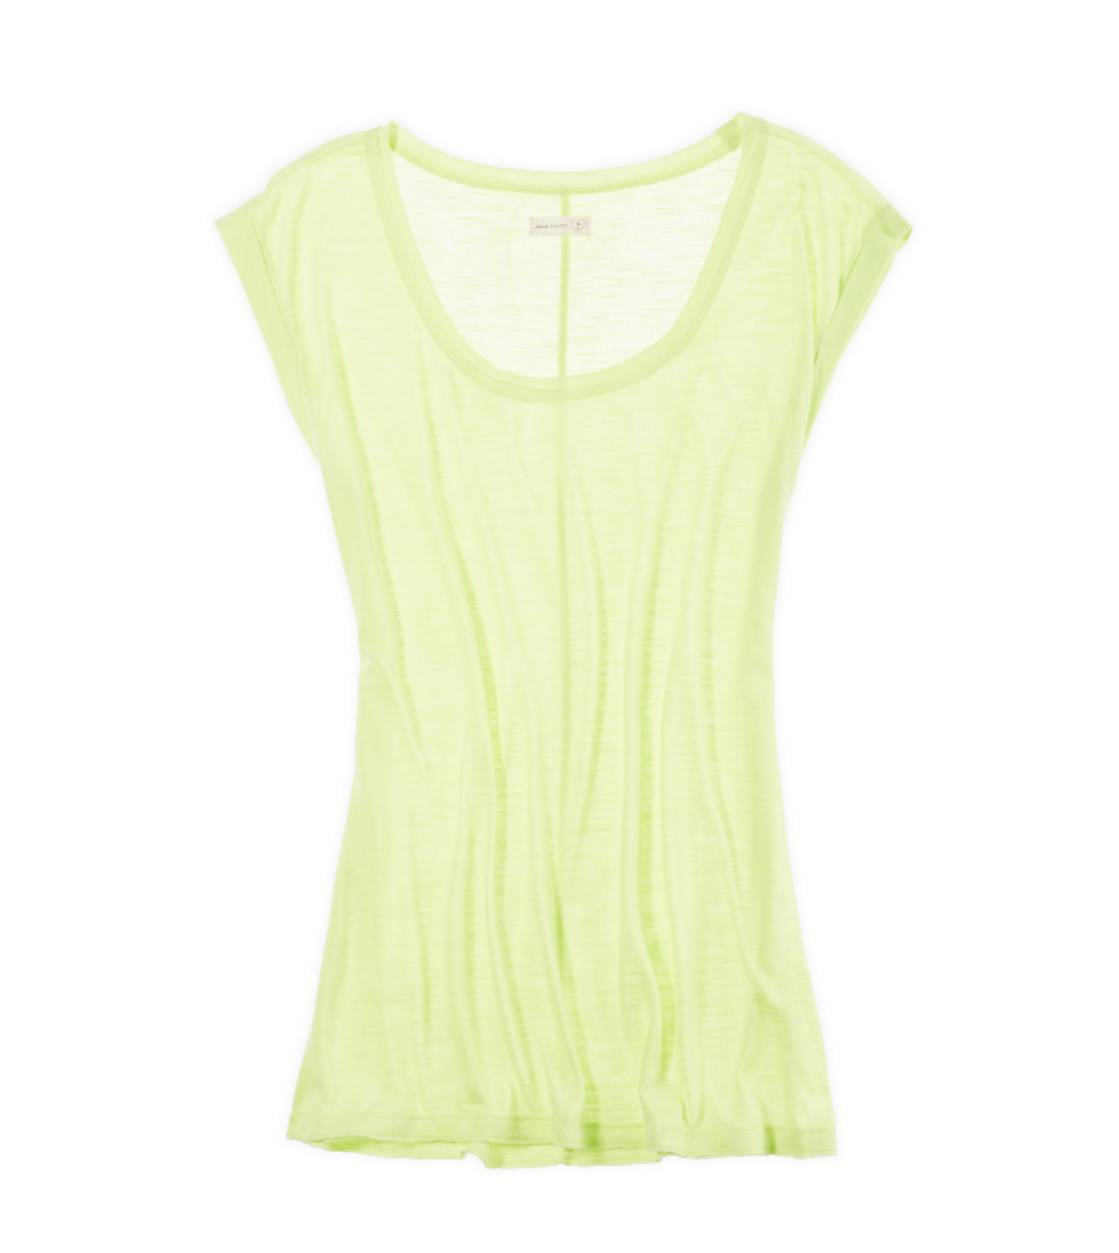 Lemon Lime Infusion Aerie Sun Tee